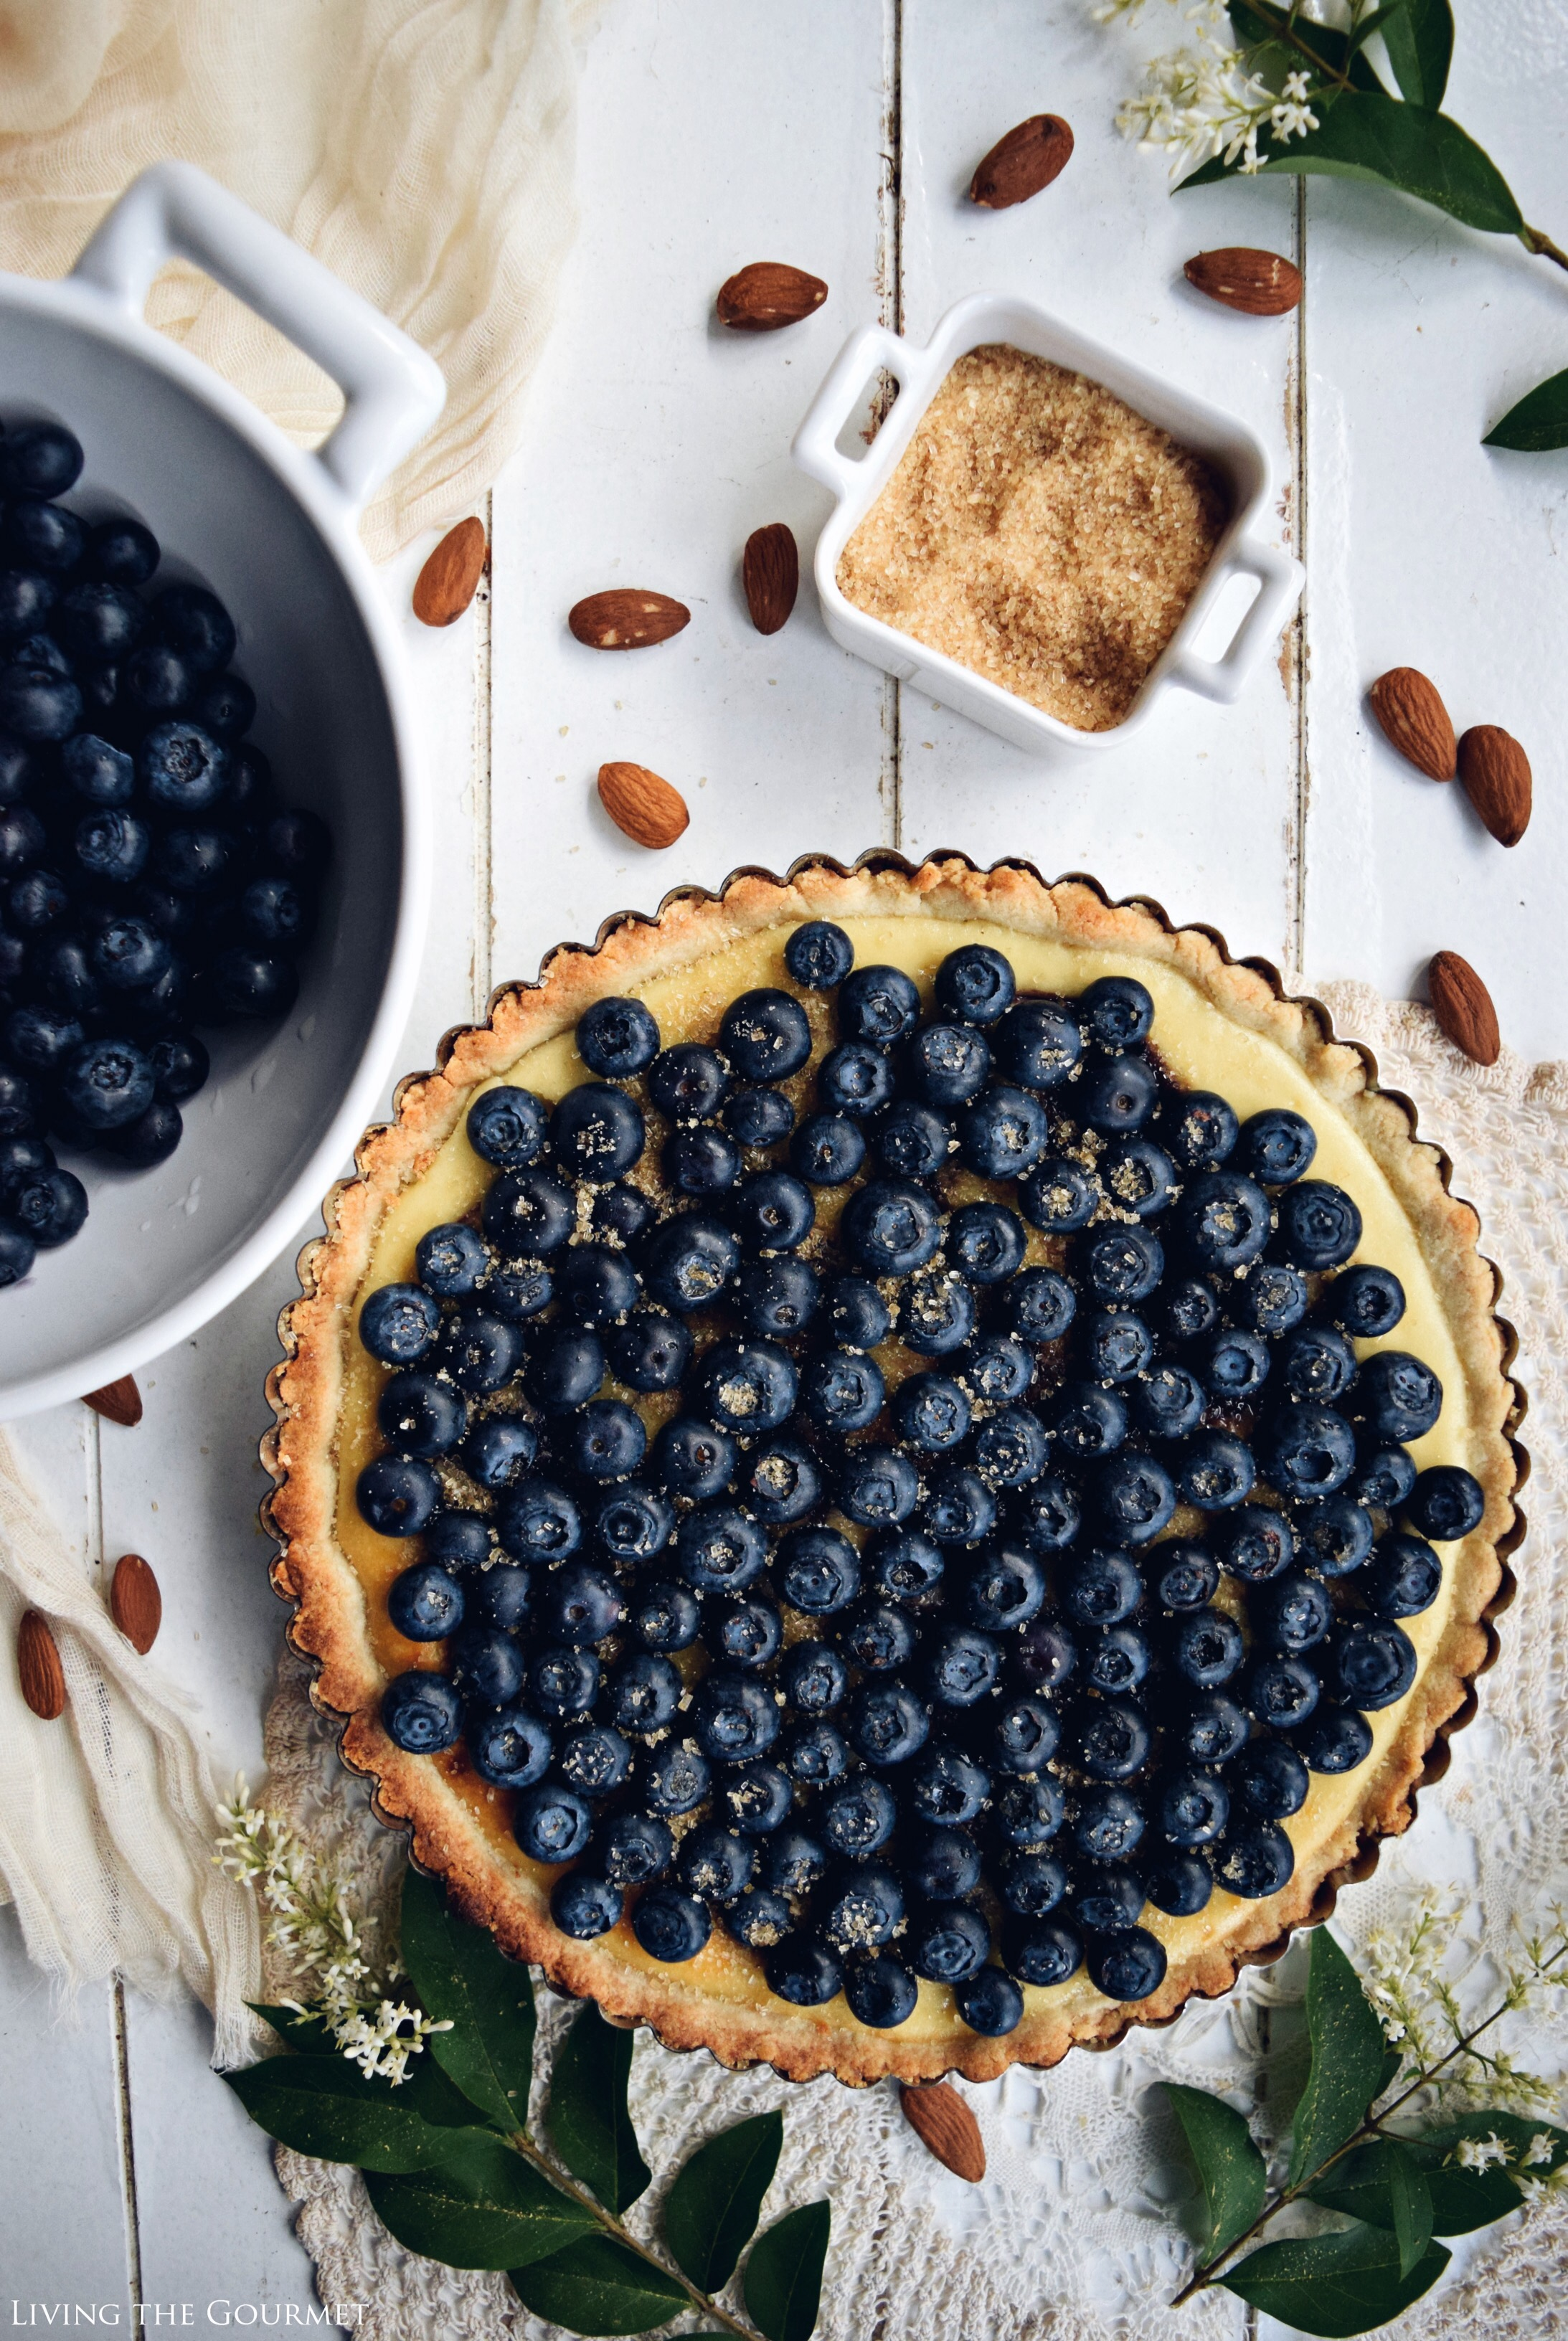 Whipped Ricotta & Blueberry Tart from Living the Gourmet